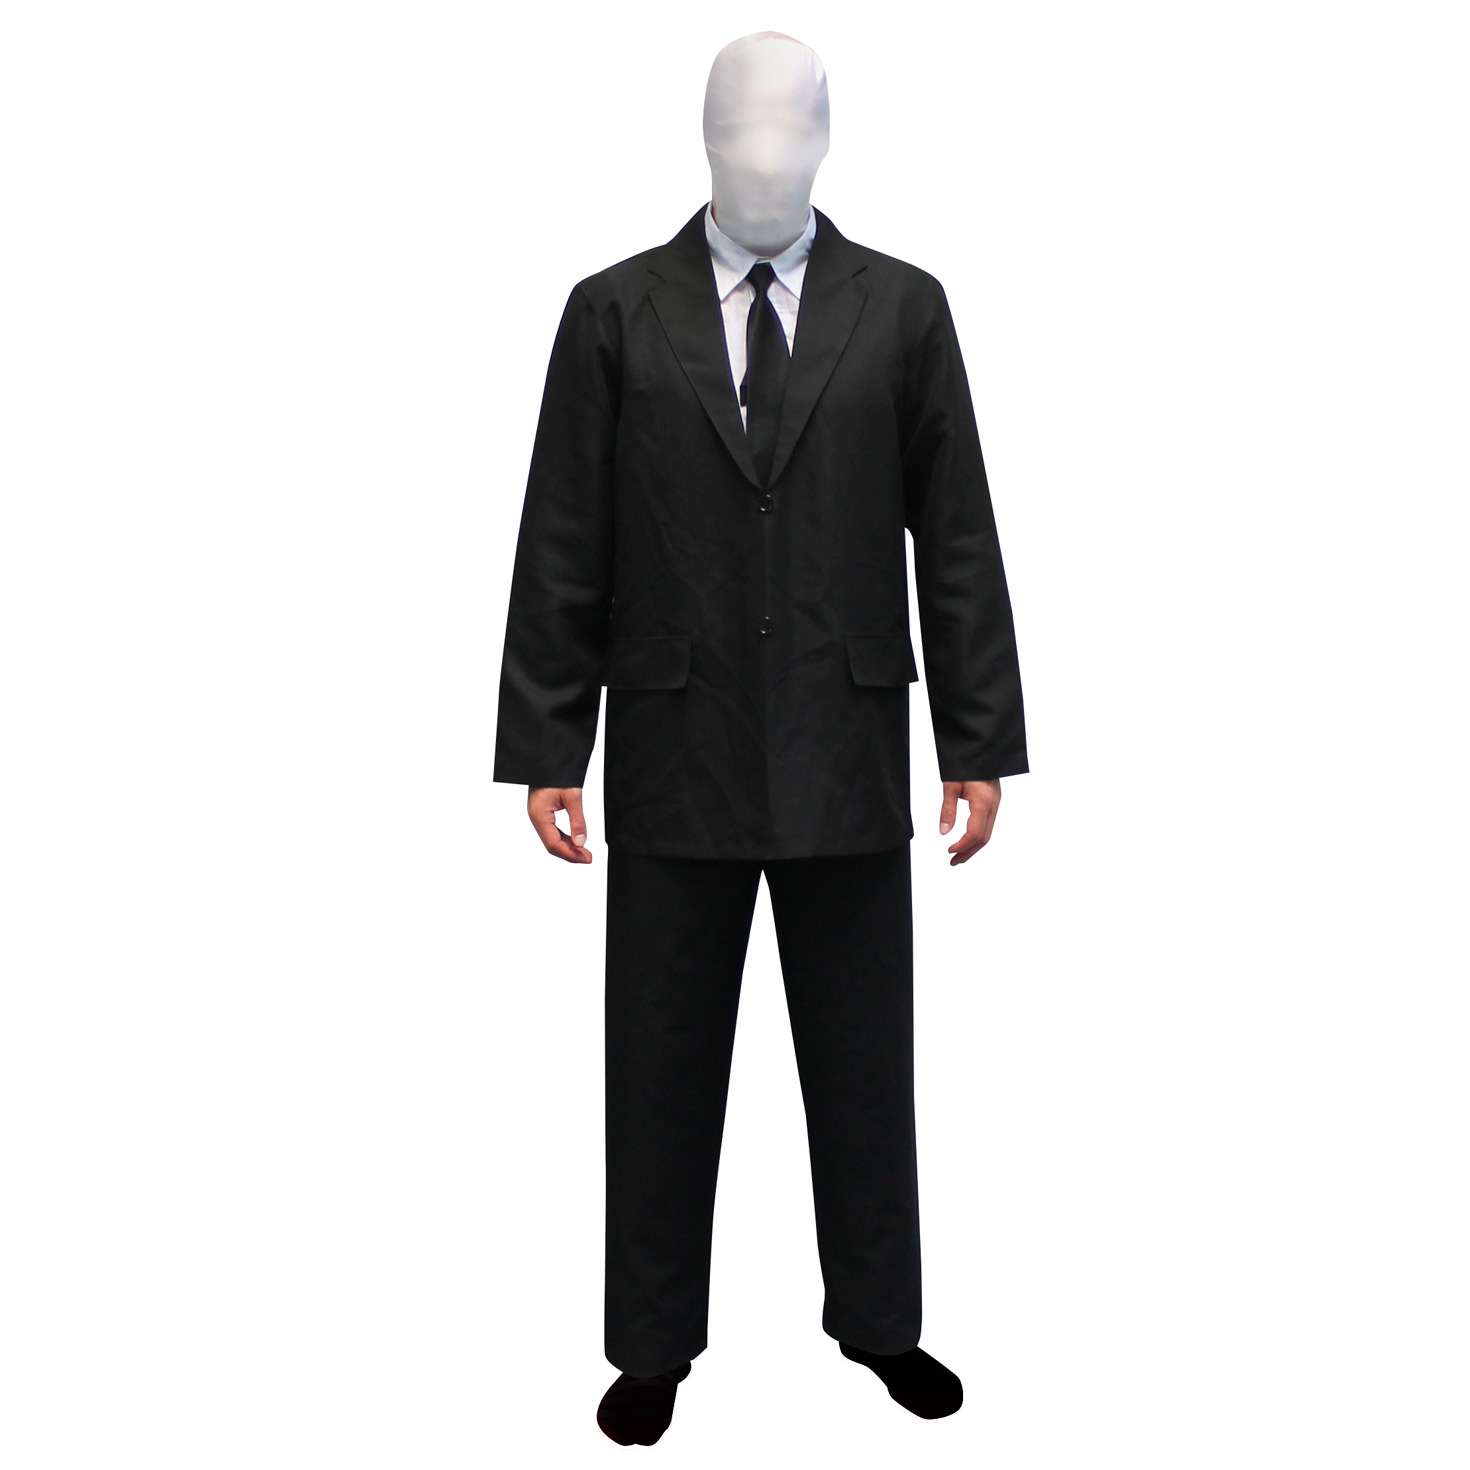 Morphsuits Scary Slender Man Fancy Dress Costume Slenderman for ...